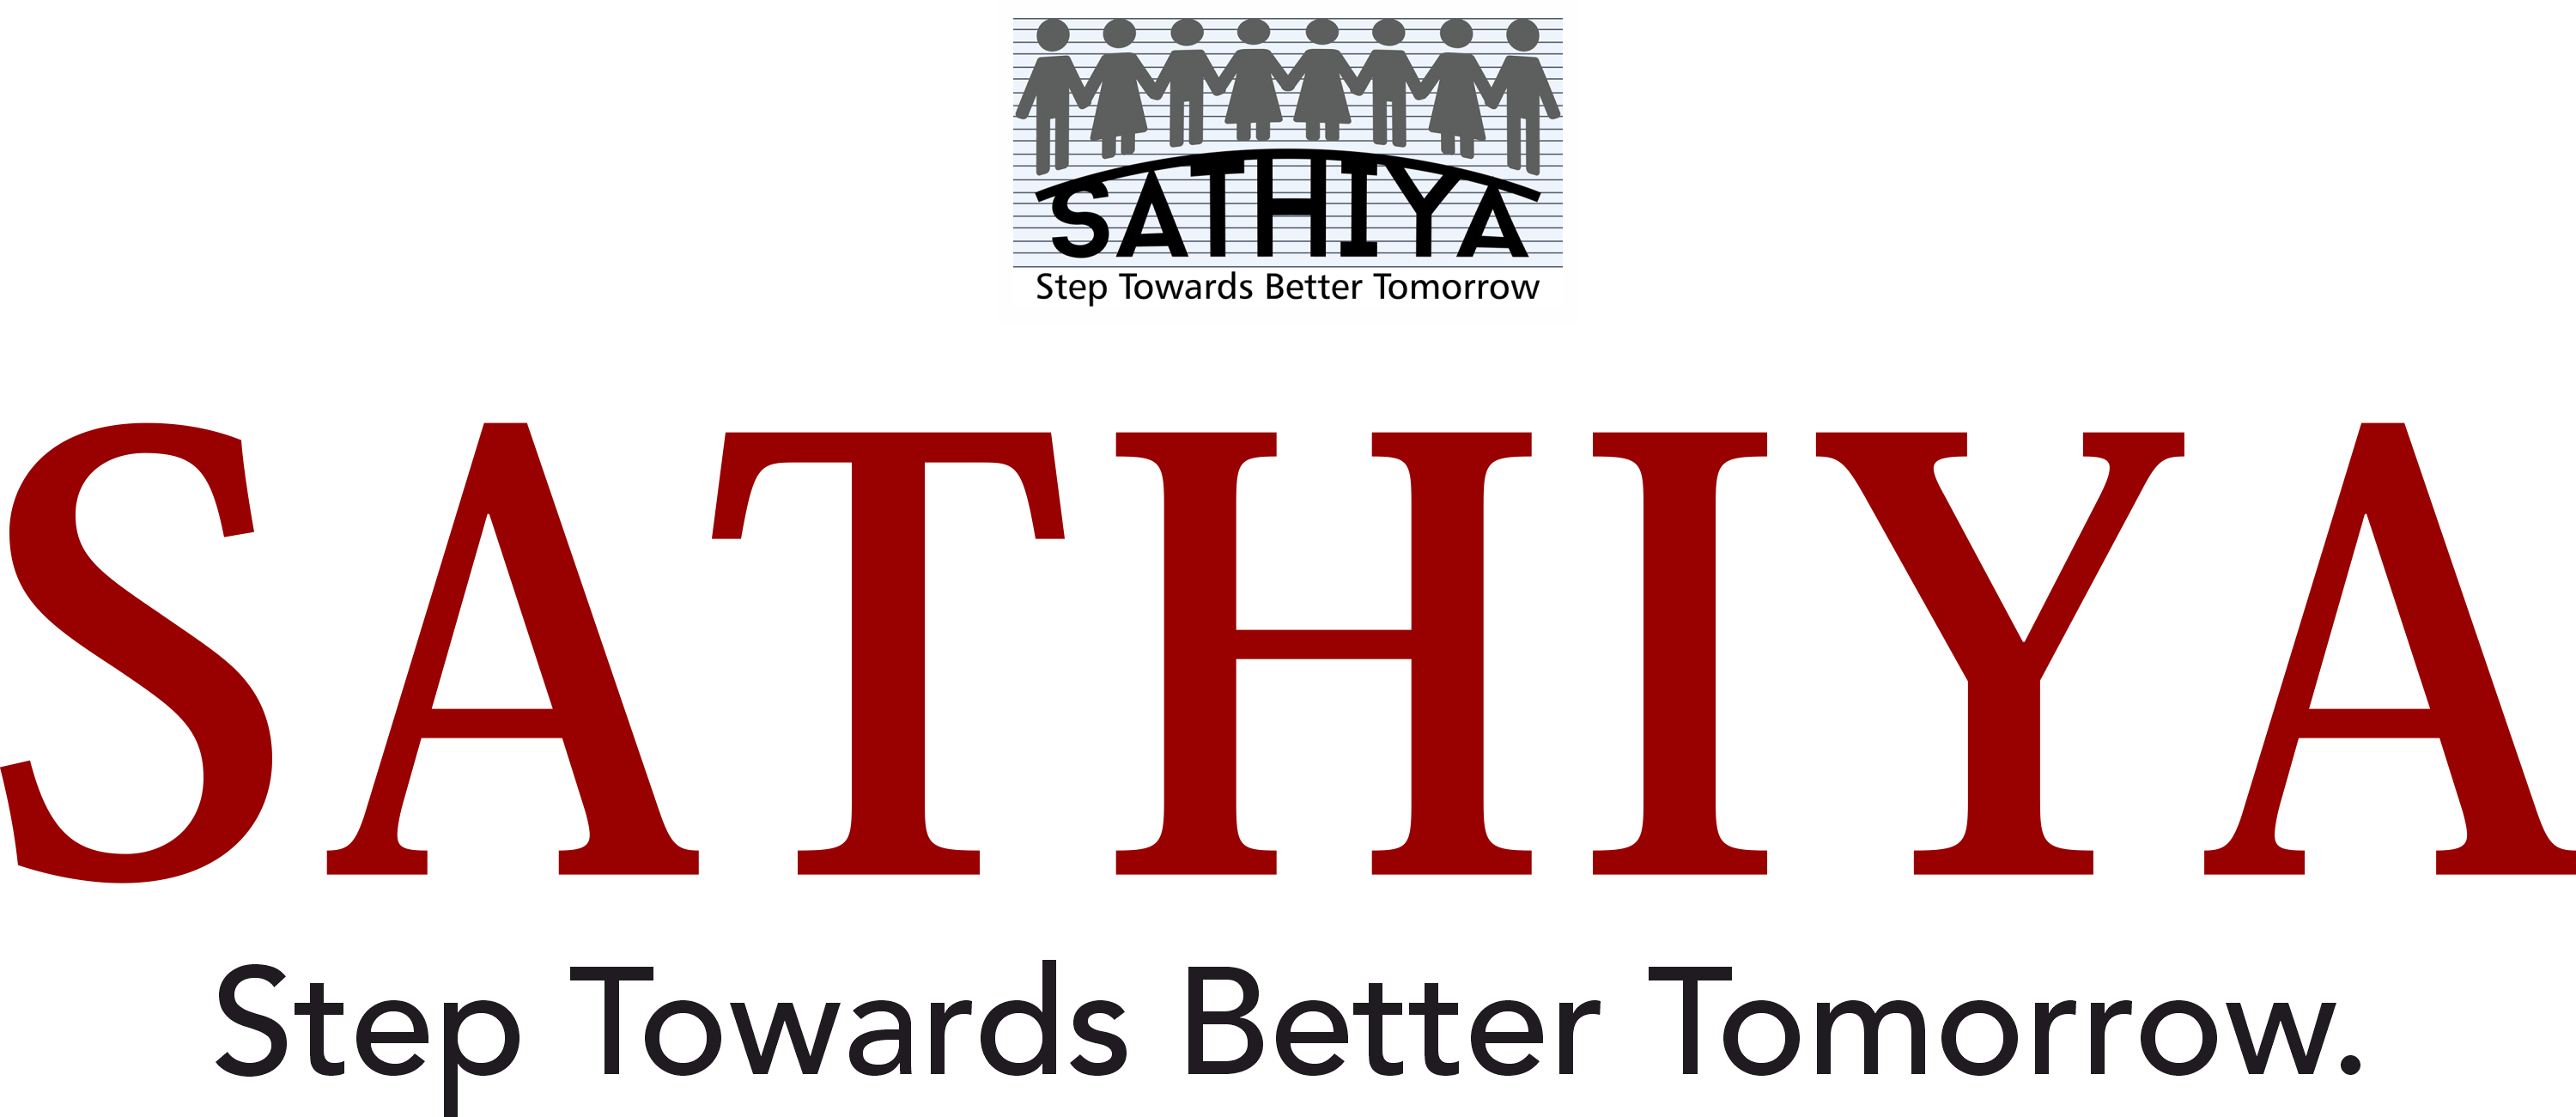 Sathiya Pariwar | Sathiya Welfare Society | Best NGO in Bhopal